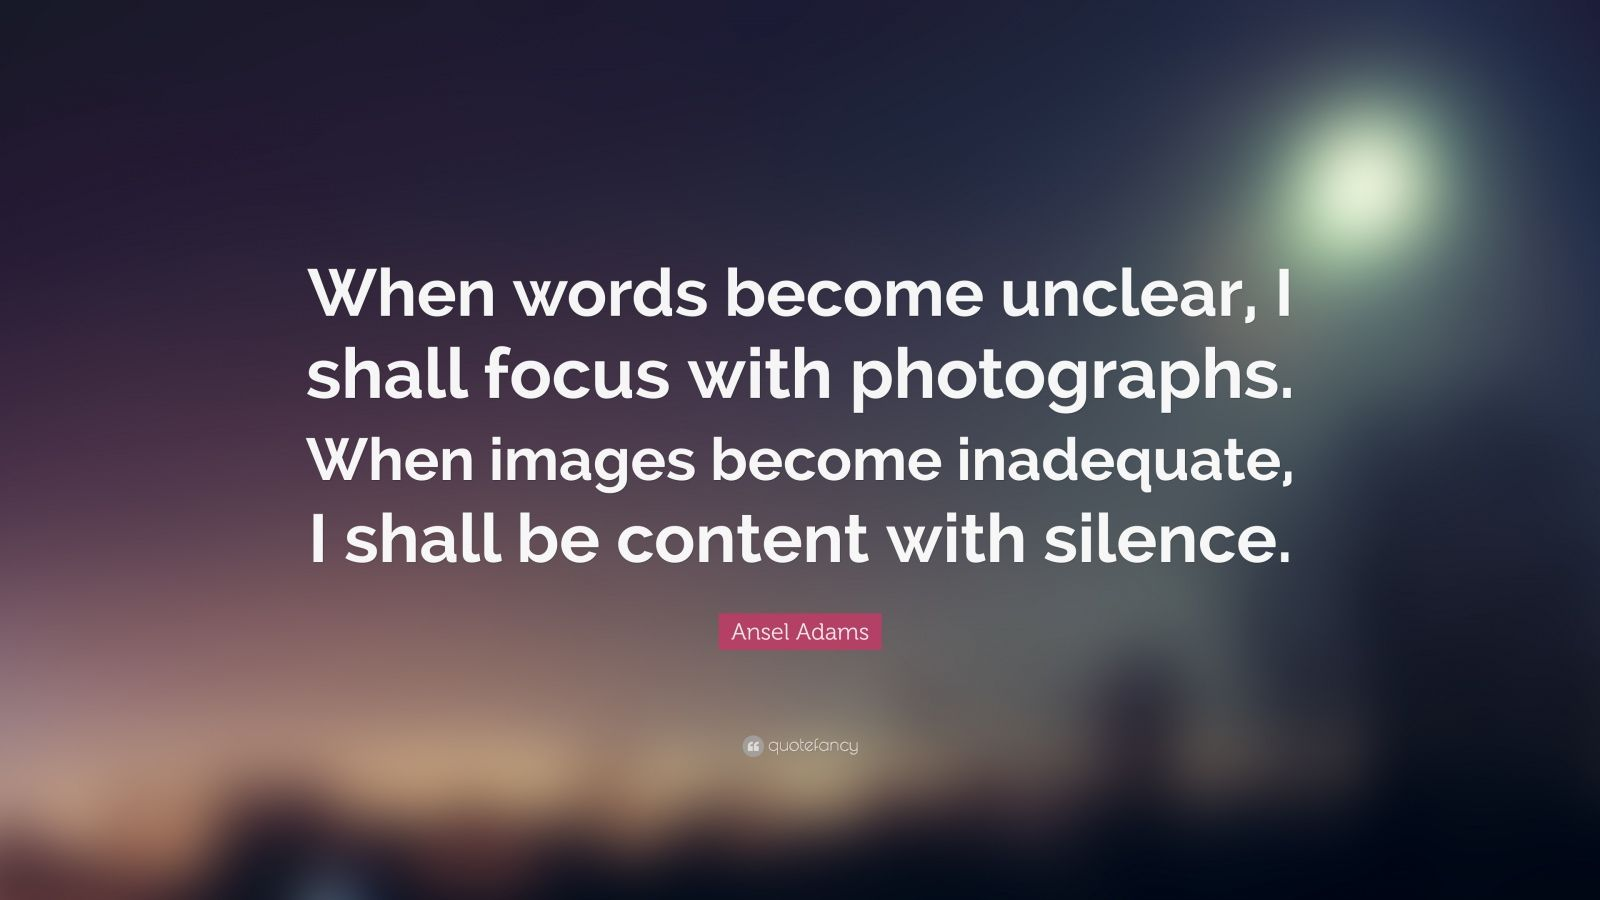 """Ansel Adams Quote: """"When words become unclear, I shall focus with photographs. When images become inadequate, I shall be content with silence."""""""